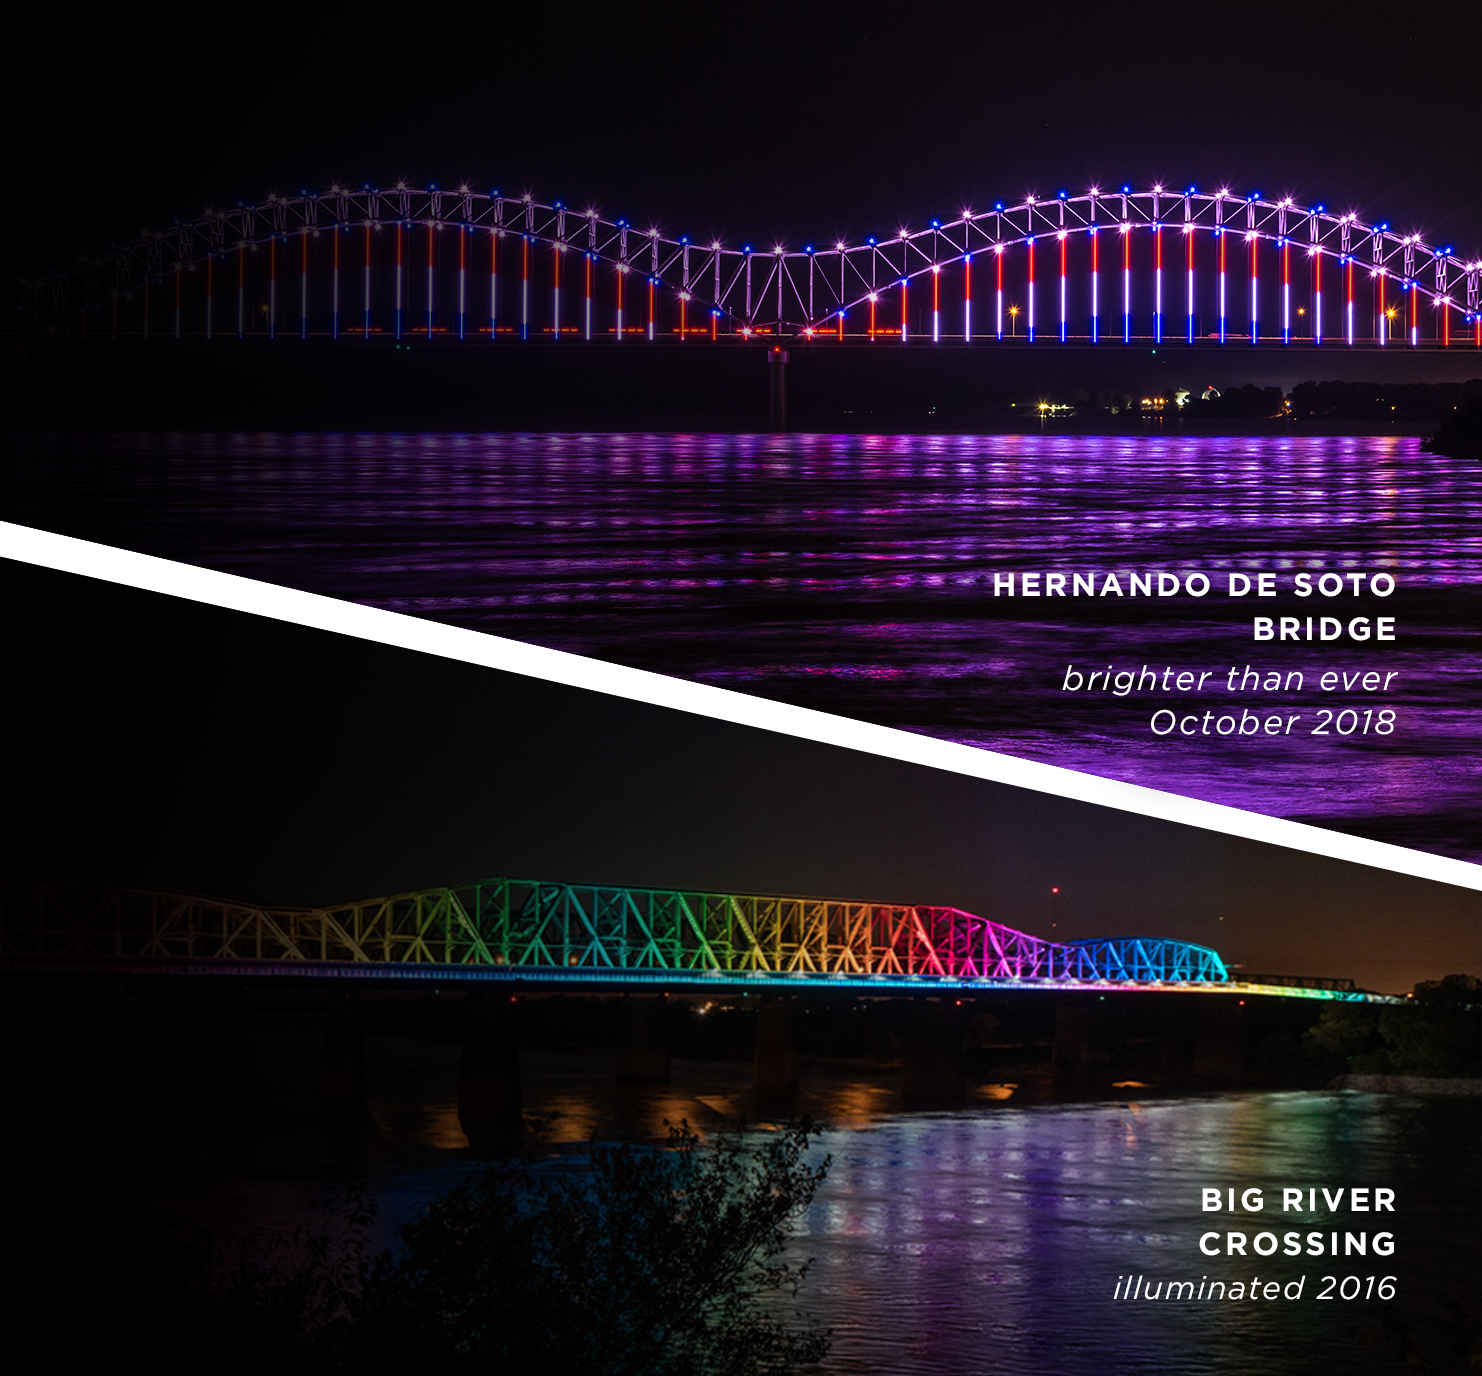 Reflecting the energy of memphis - Join us for the biggest nightly light show on the Mississippi River. Running every hour on the hour from sundown to 11pm.